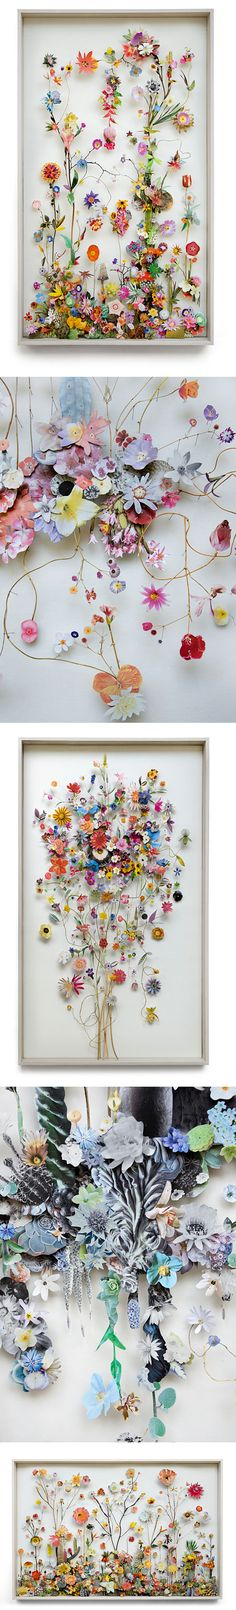 The difference between art and craft and the work of Anne Ten Donkelaar& collages. Flower Collage, Collage Art, Flower Art, Dried Flowers, Paper Flowers, Paper Art, Paper Crafts, Art Floral, Aunt Peaches